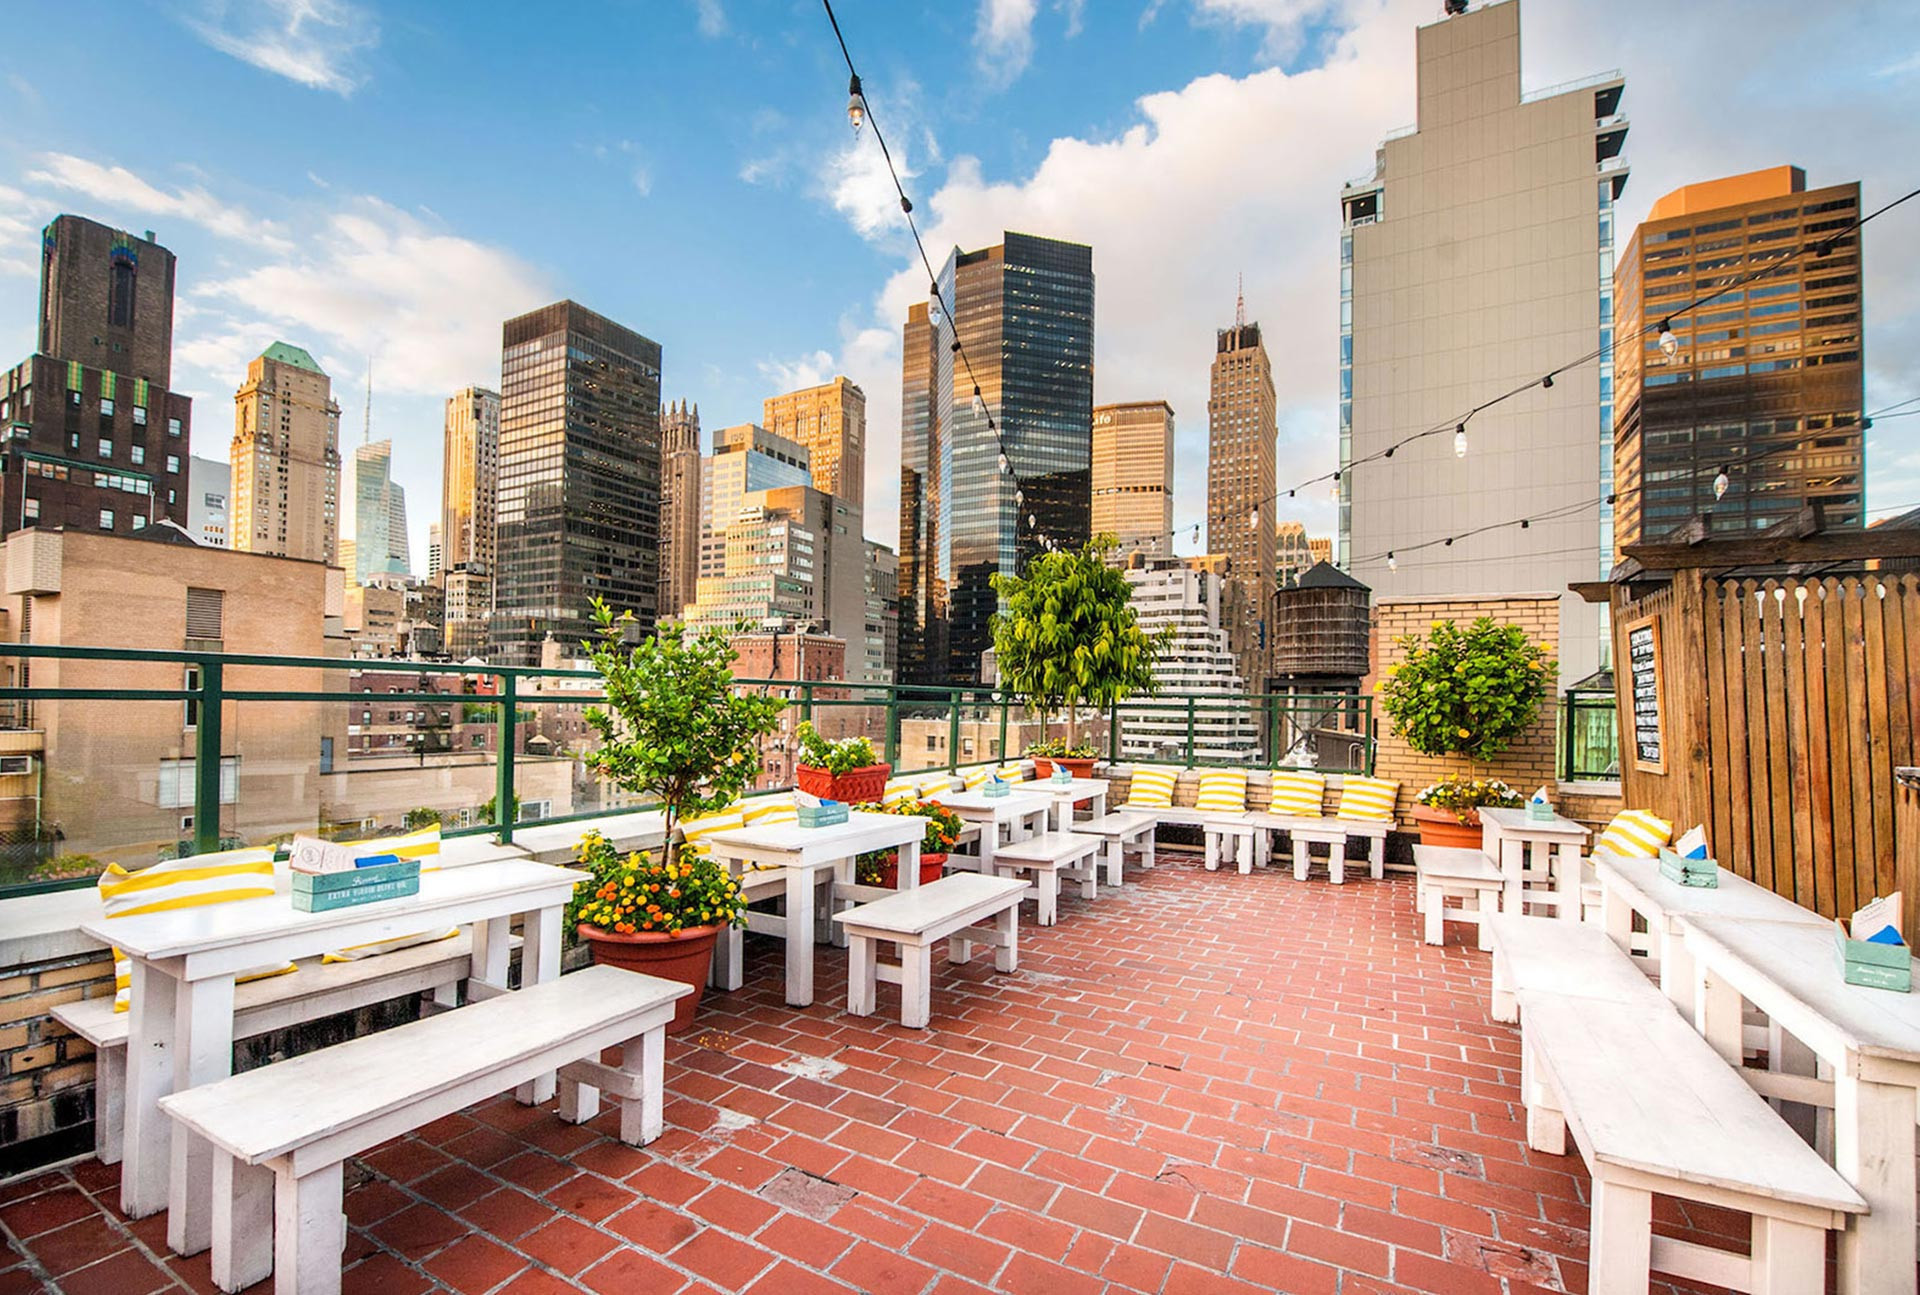 The 6 Best Rooftop Bars Midtown East New York City Has To ...